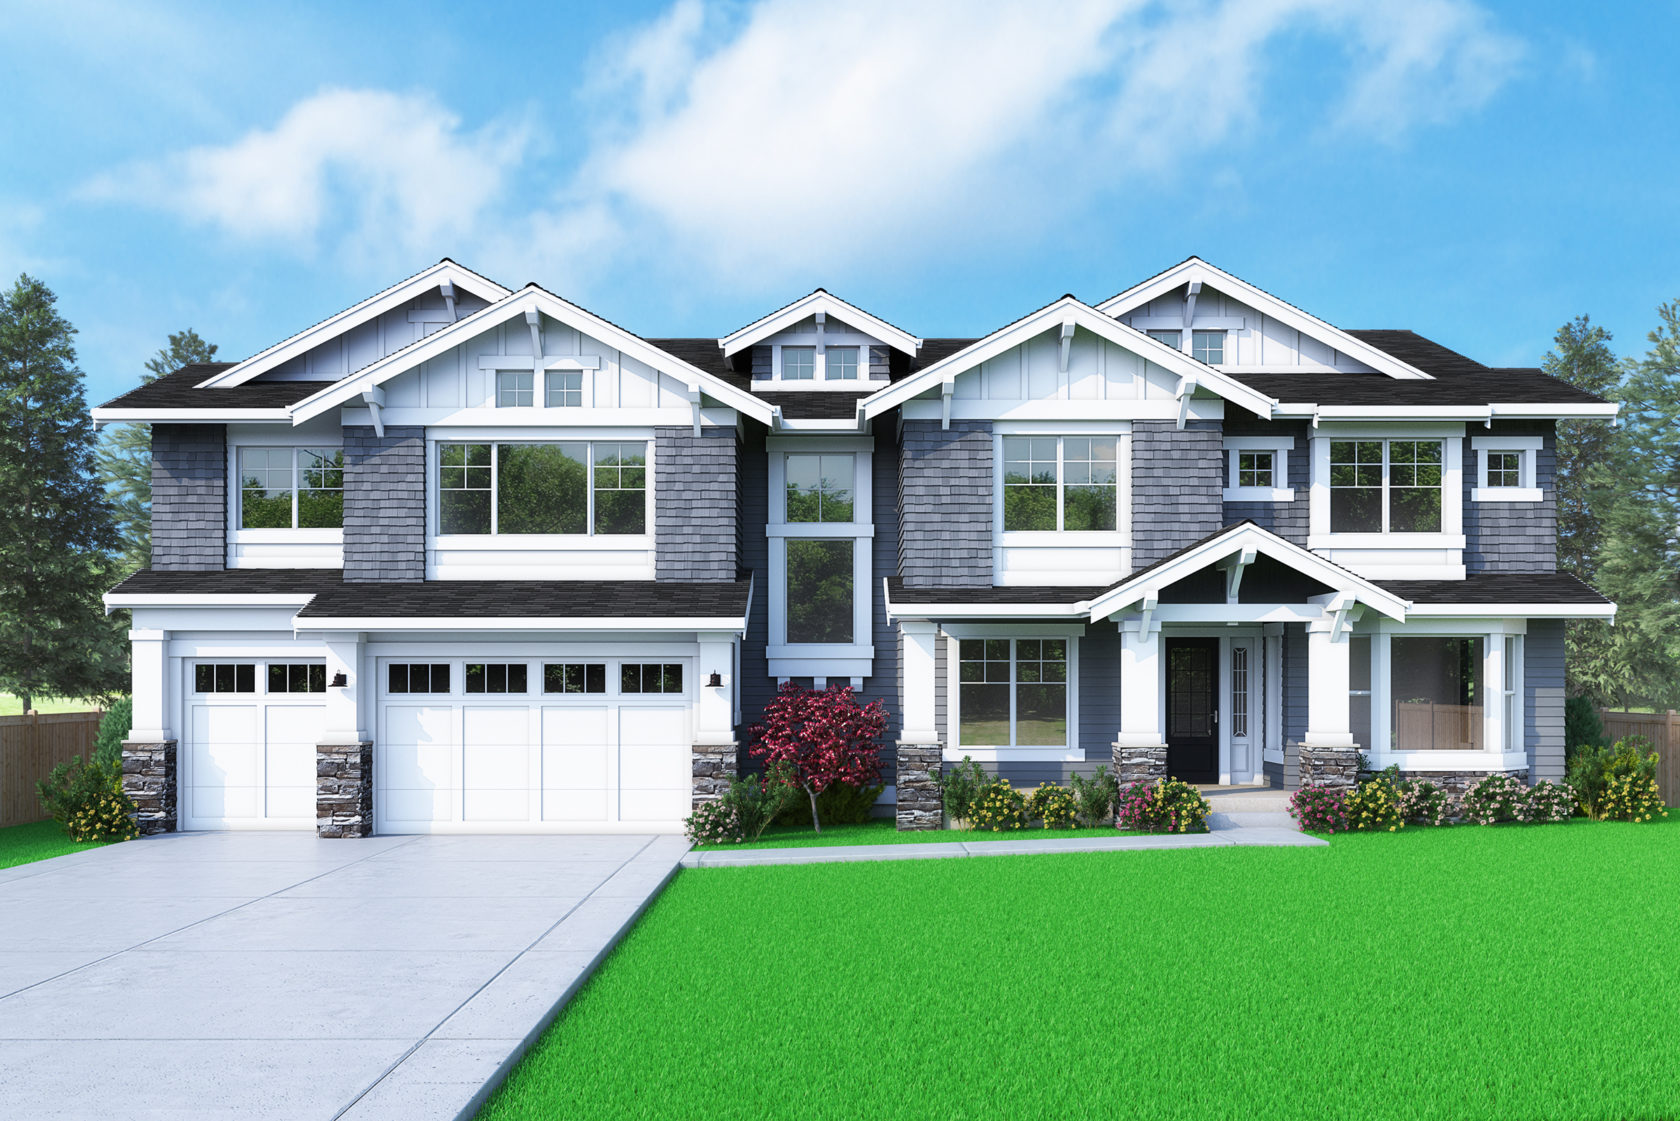 View our new luxury home construction on 2126 104th PL SE, in Bellevue, WA from MN Custom Homes